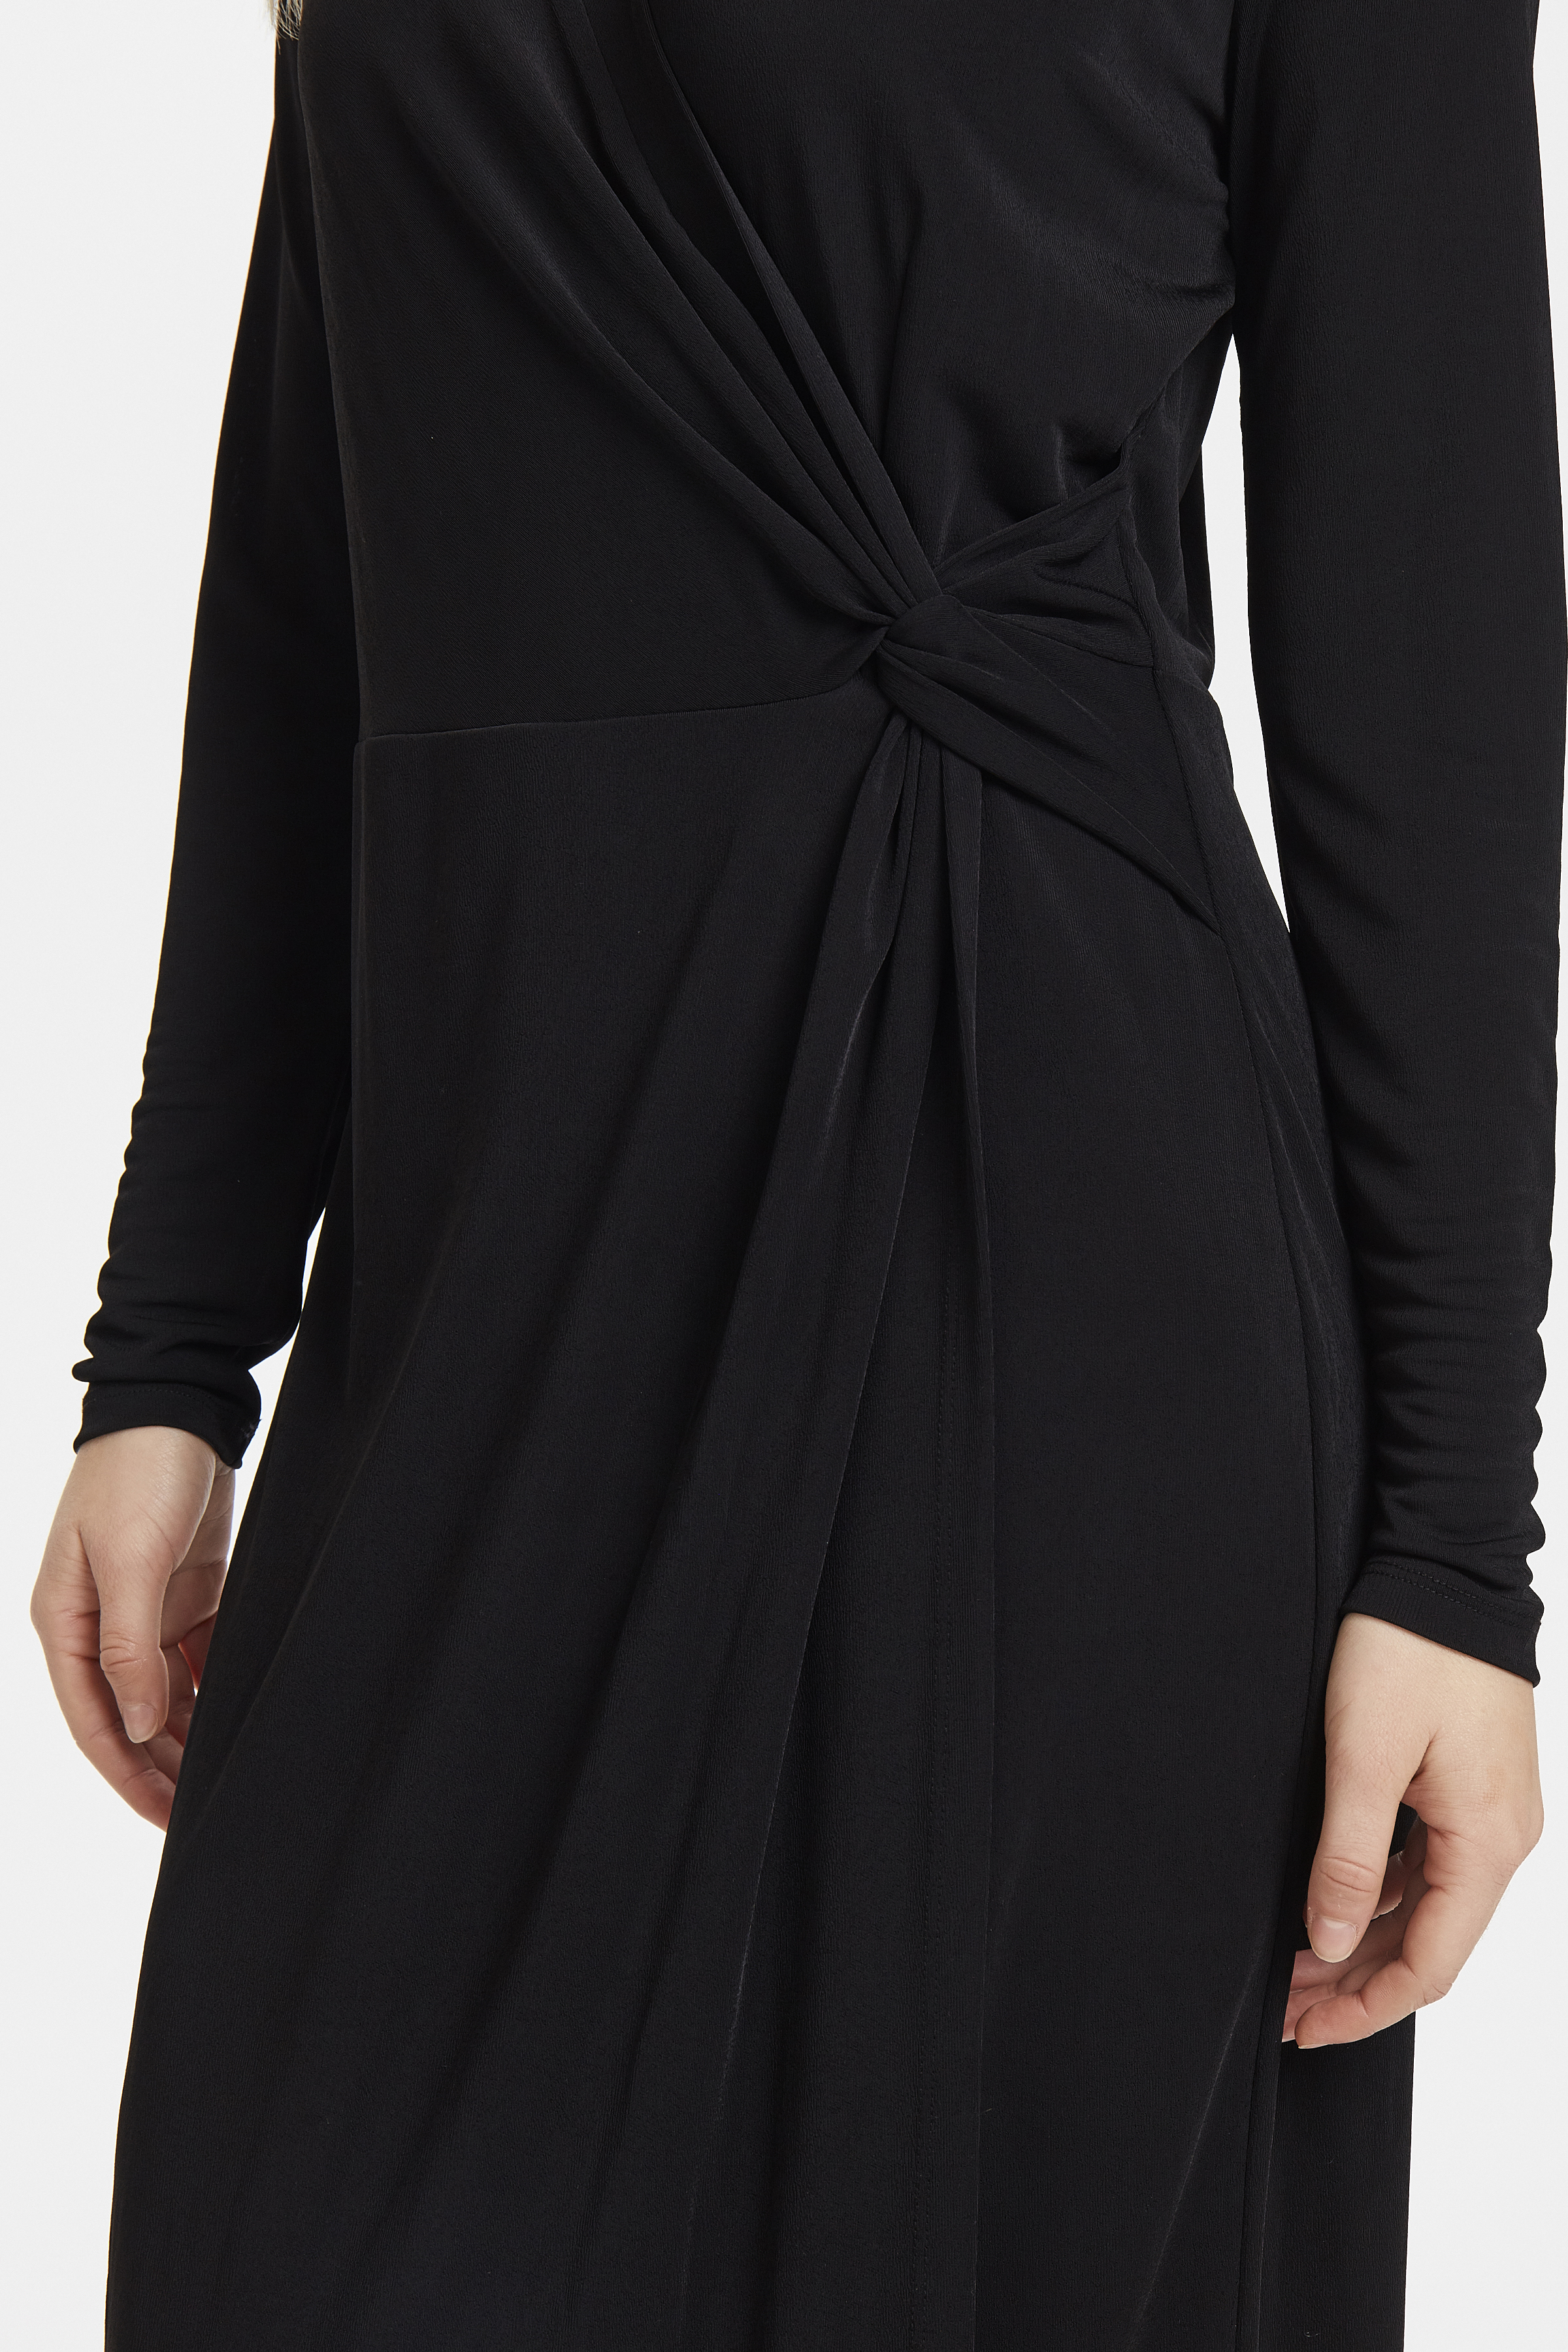 Black Jersey dress from b.young – Buy Black Jersey dress from size S-XXL here